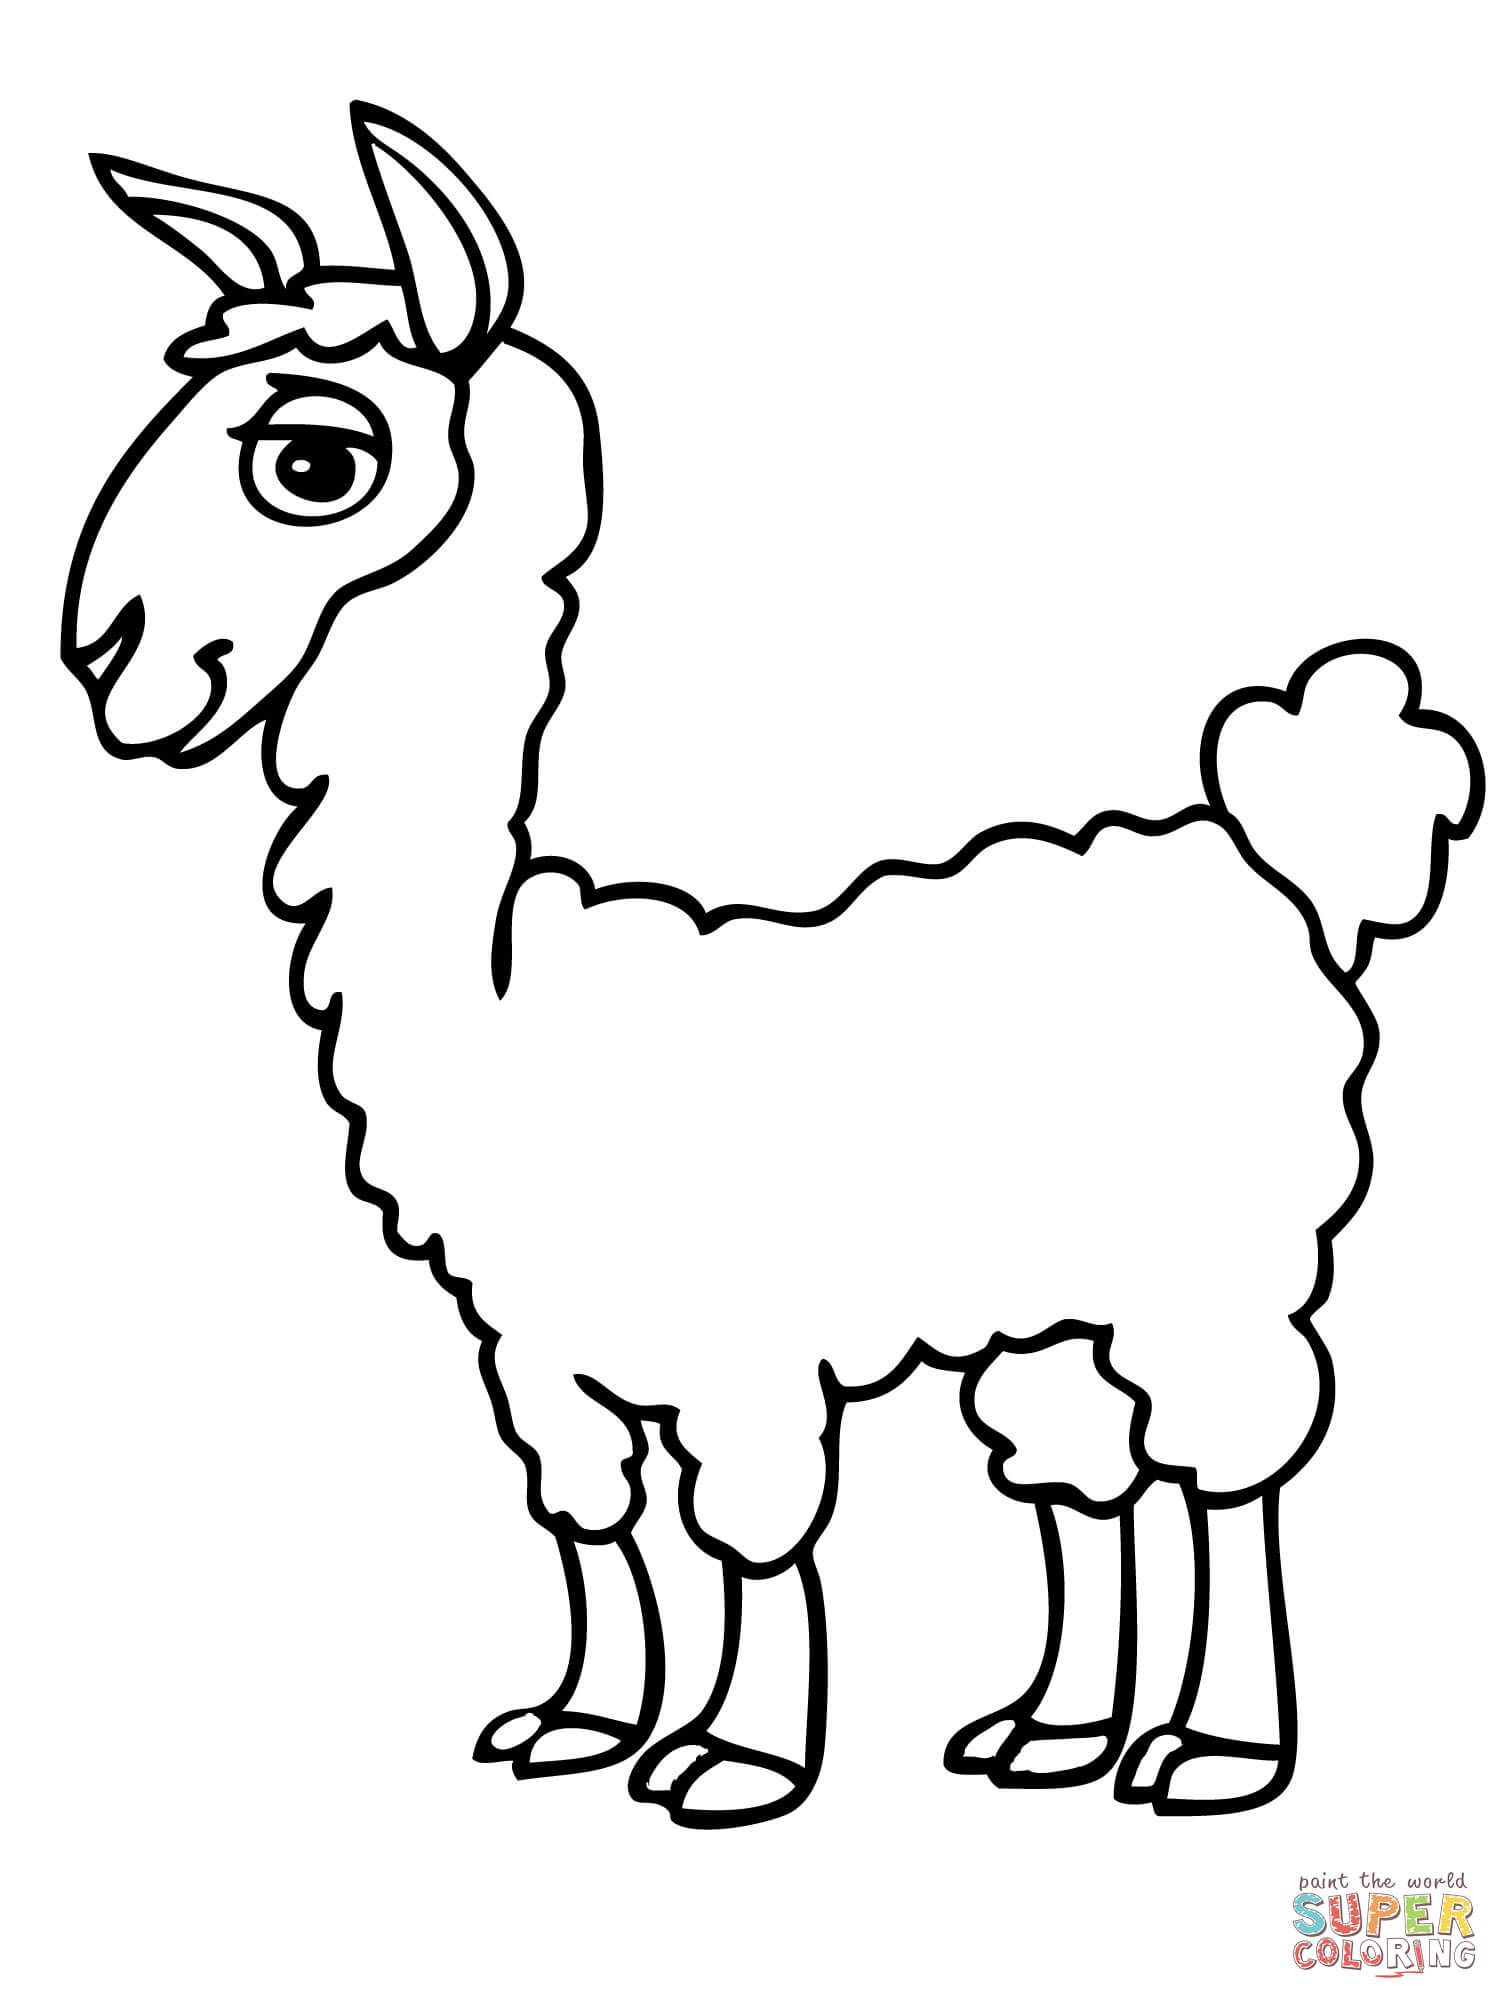 Cute Alpaca Coloring Page Free Printable Coloring Pages